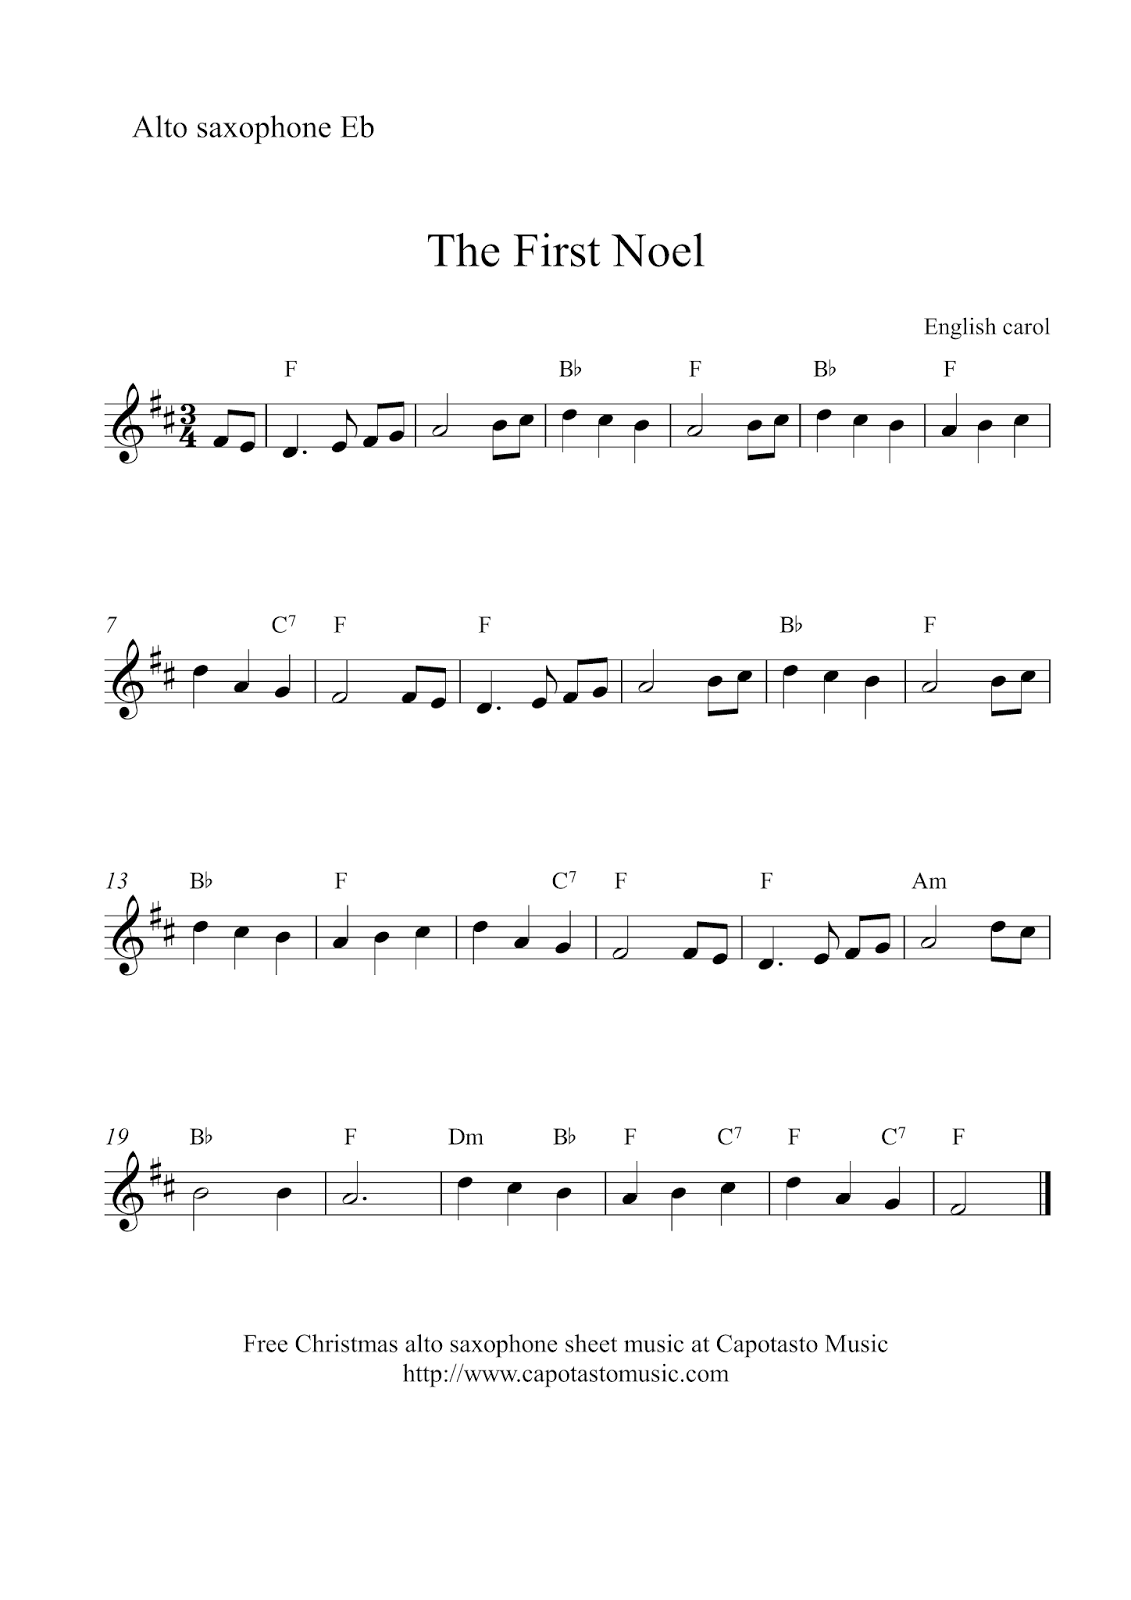 Free Christmas alto saxophone sheet music - The First Noel